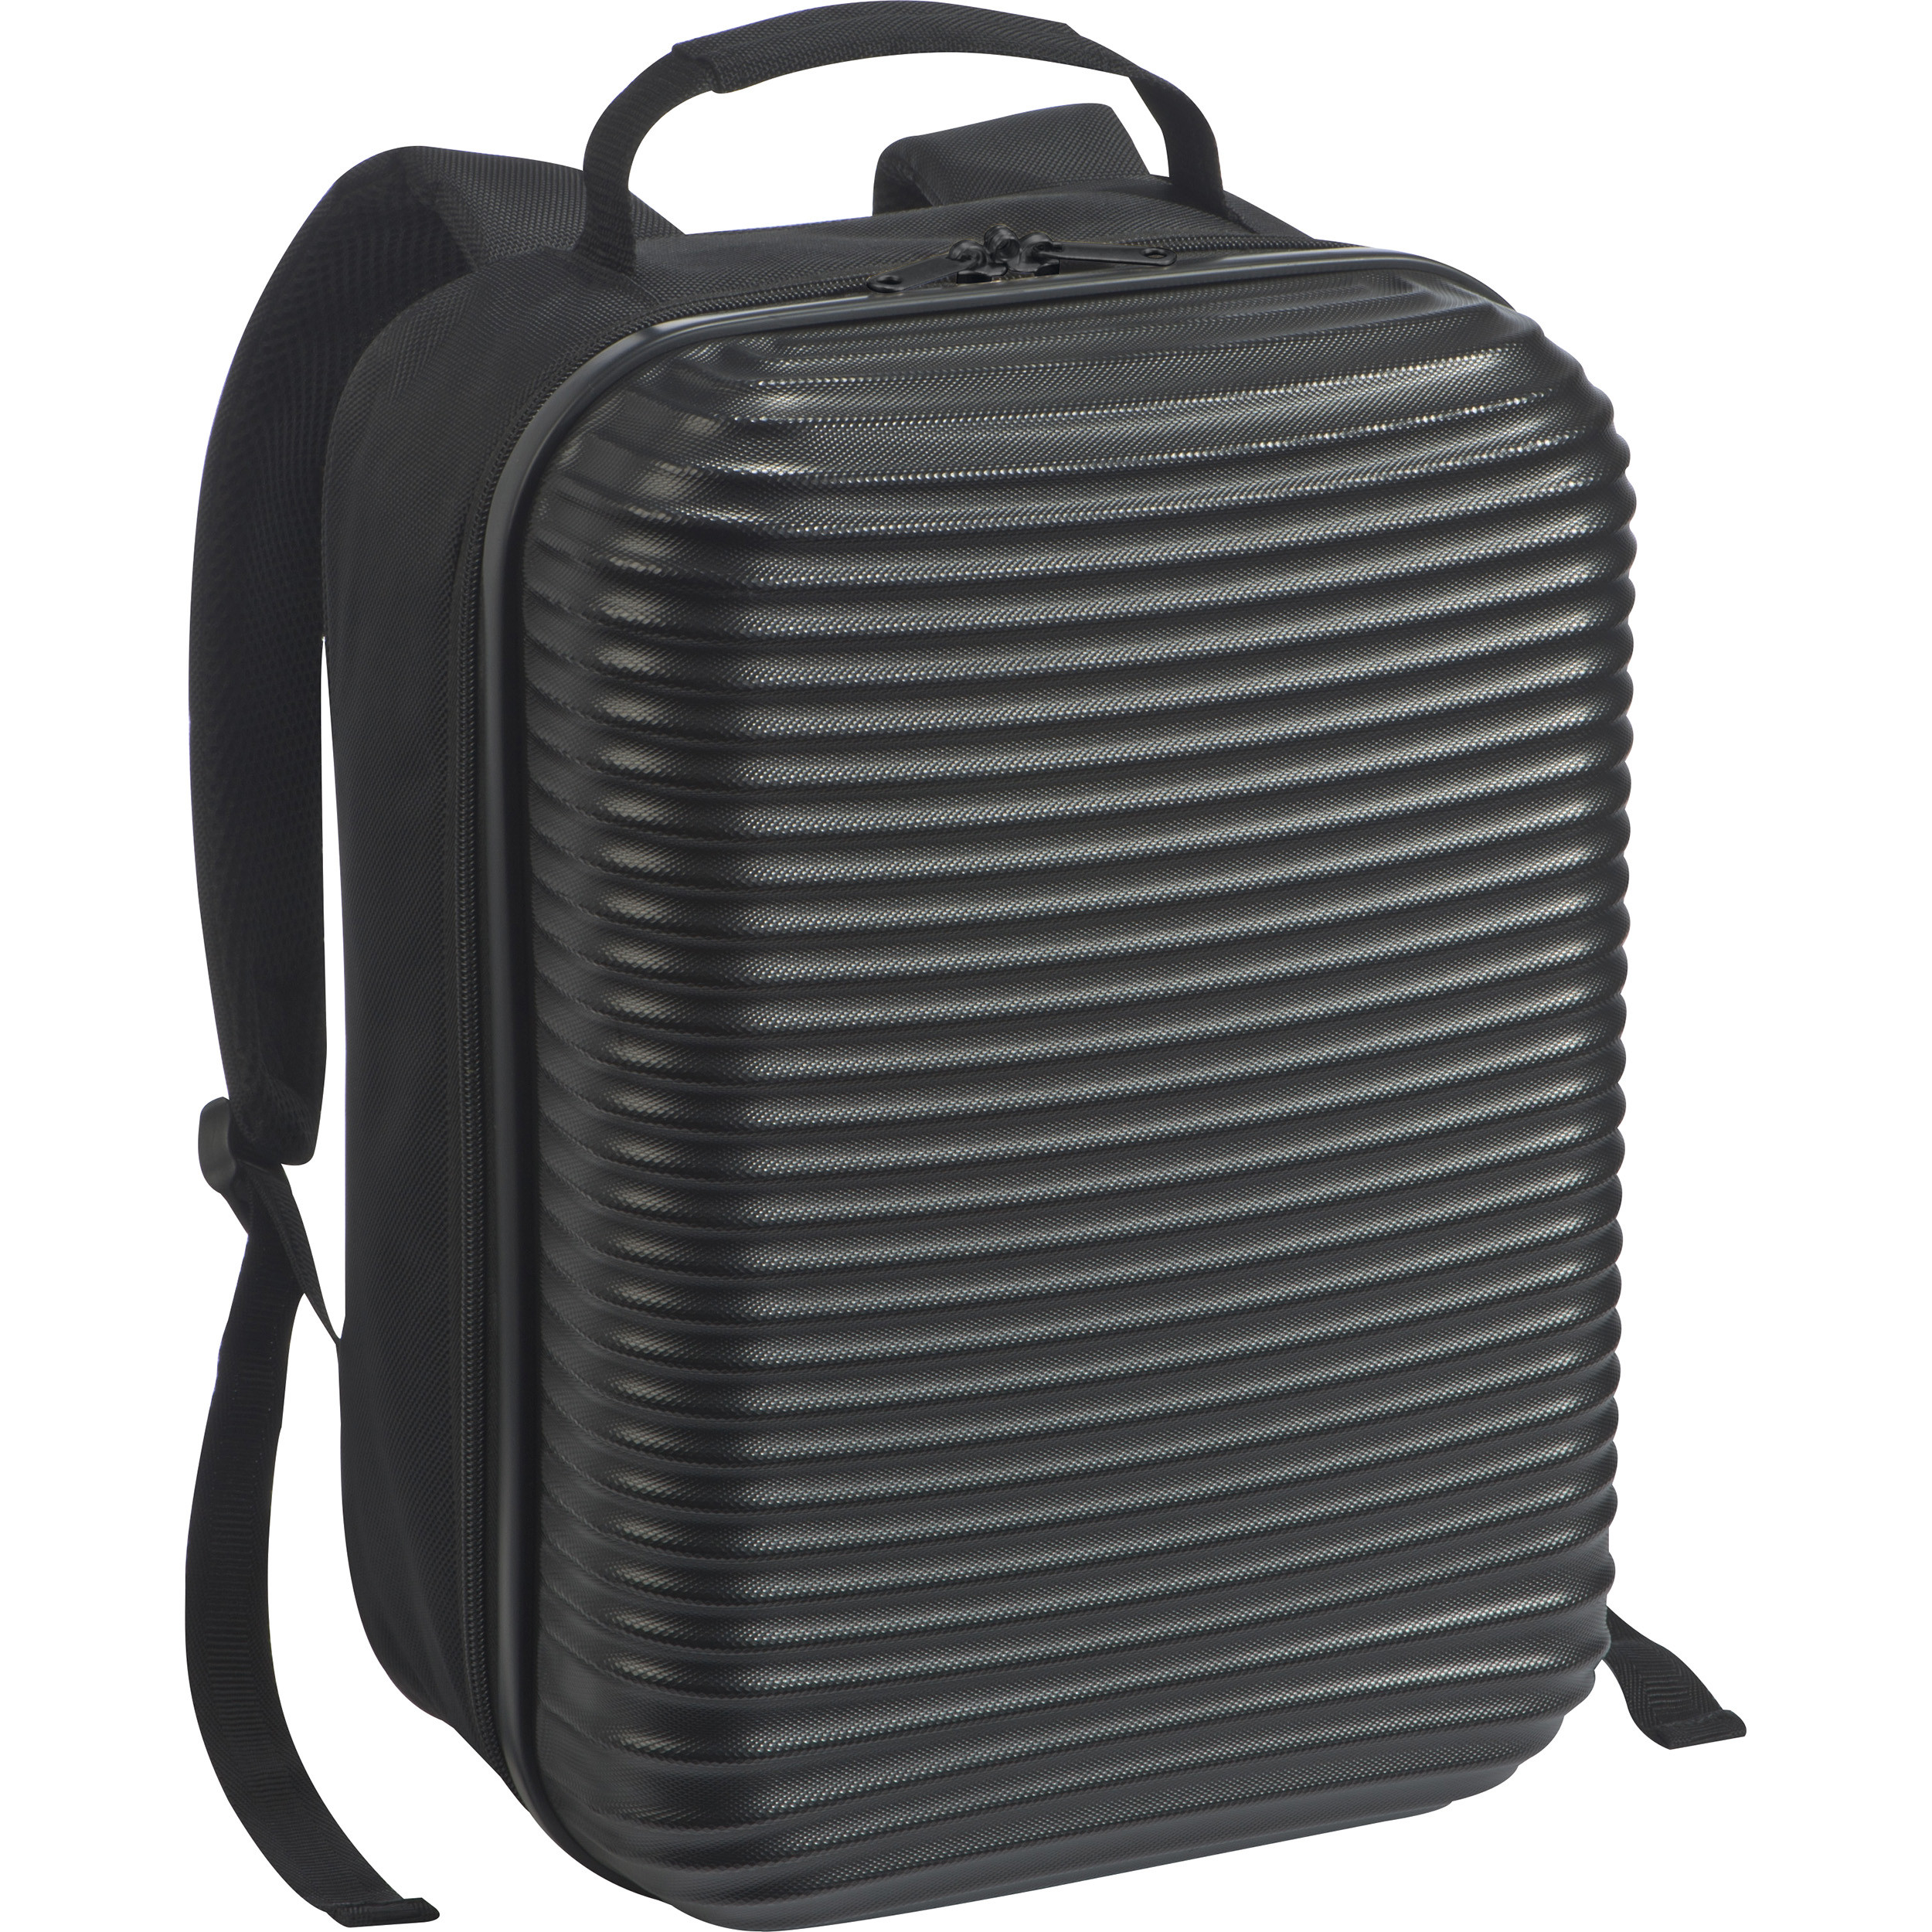 Macma Iberia | Backpack with hardcover front